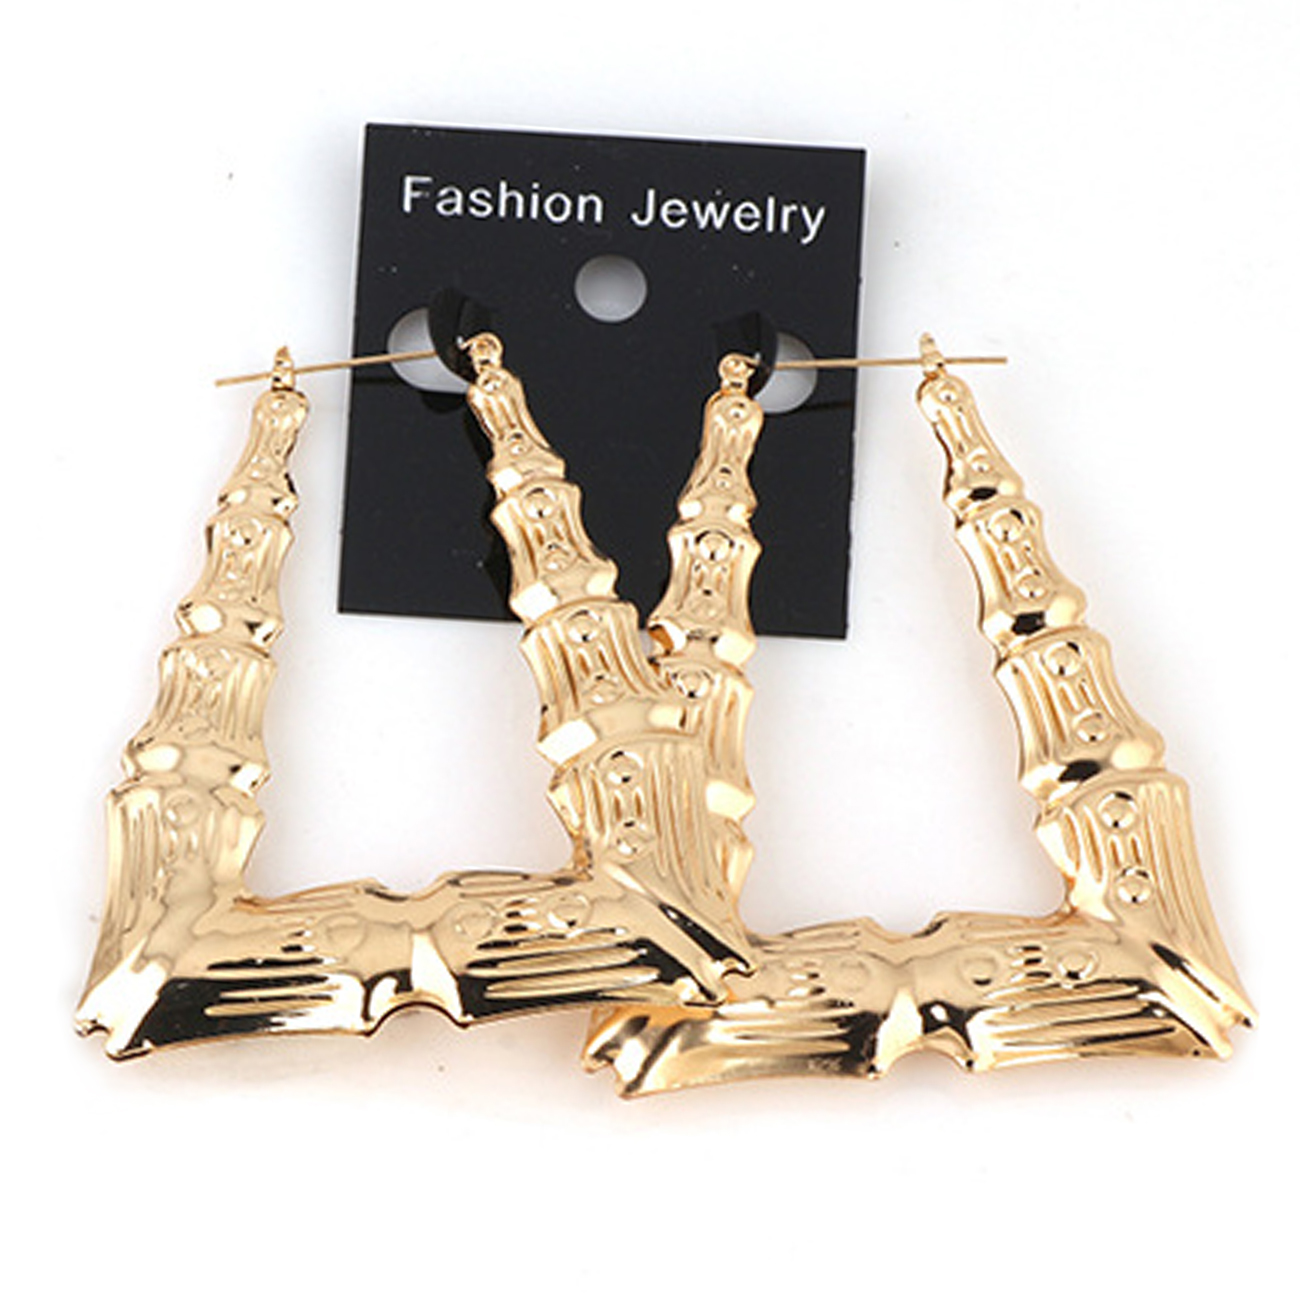 Wholesale Fashion Bamboo Earrings Gold Silver Trapezoid Shape Big Bamboo Earrings Hoops BHEP055, As the pictures